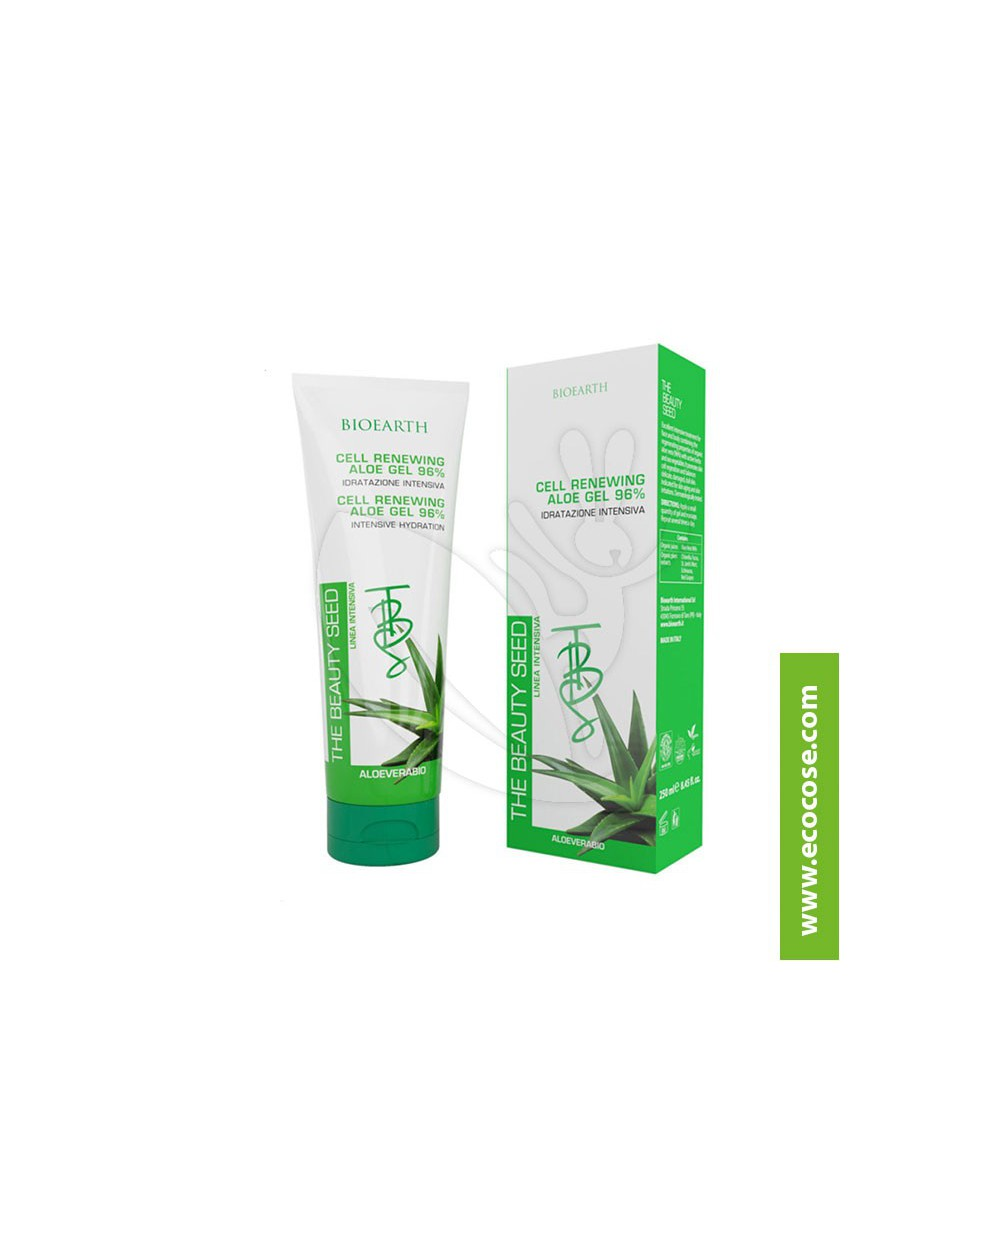 Bioearth - The Beauty Seed - Cell Renewing ALOE GEL 96%